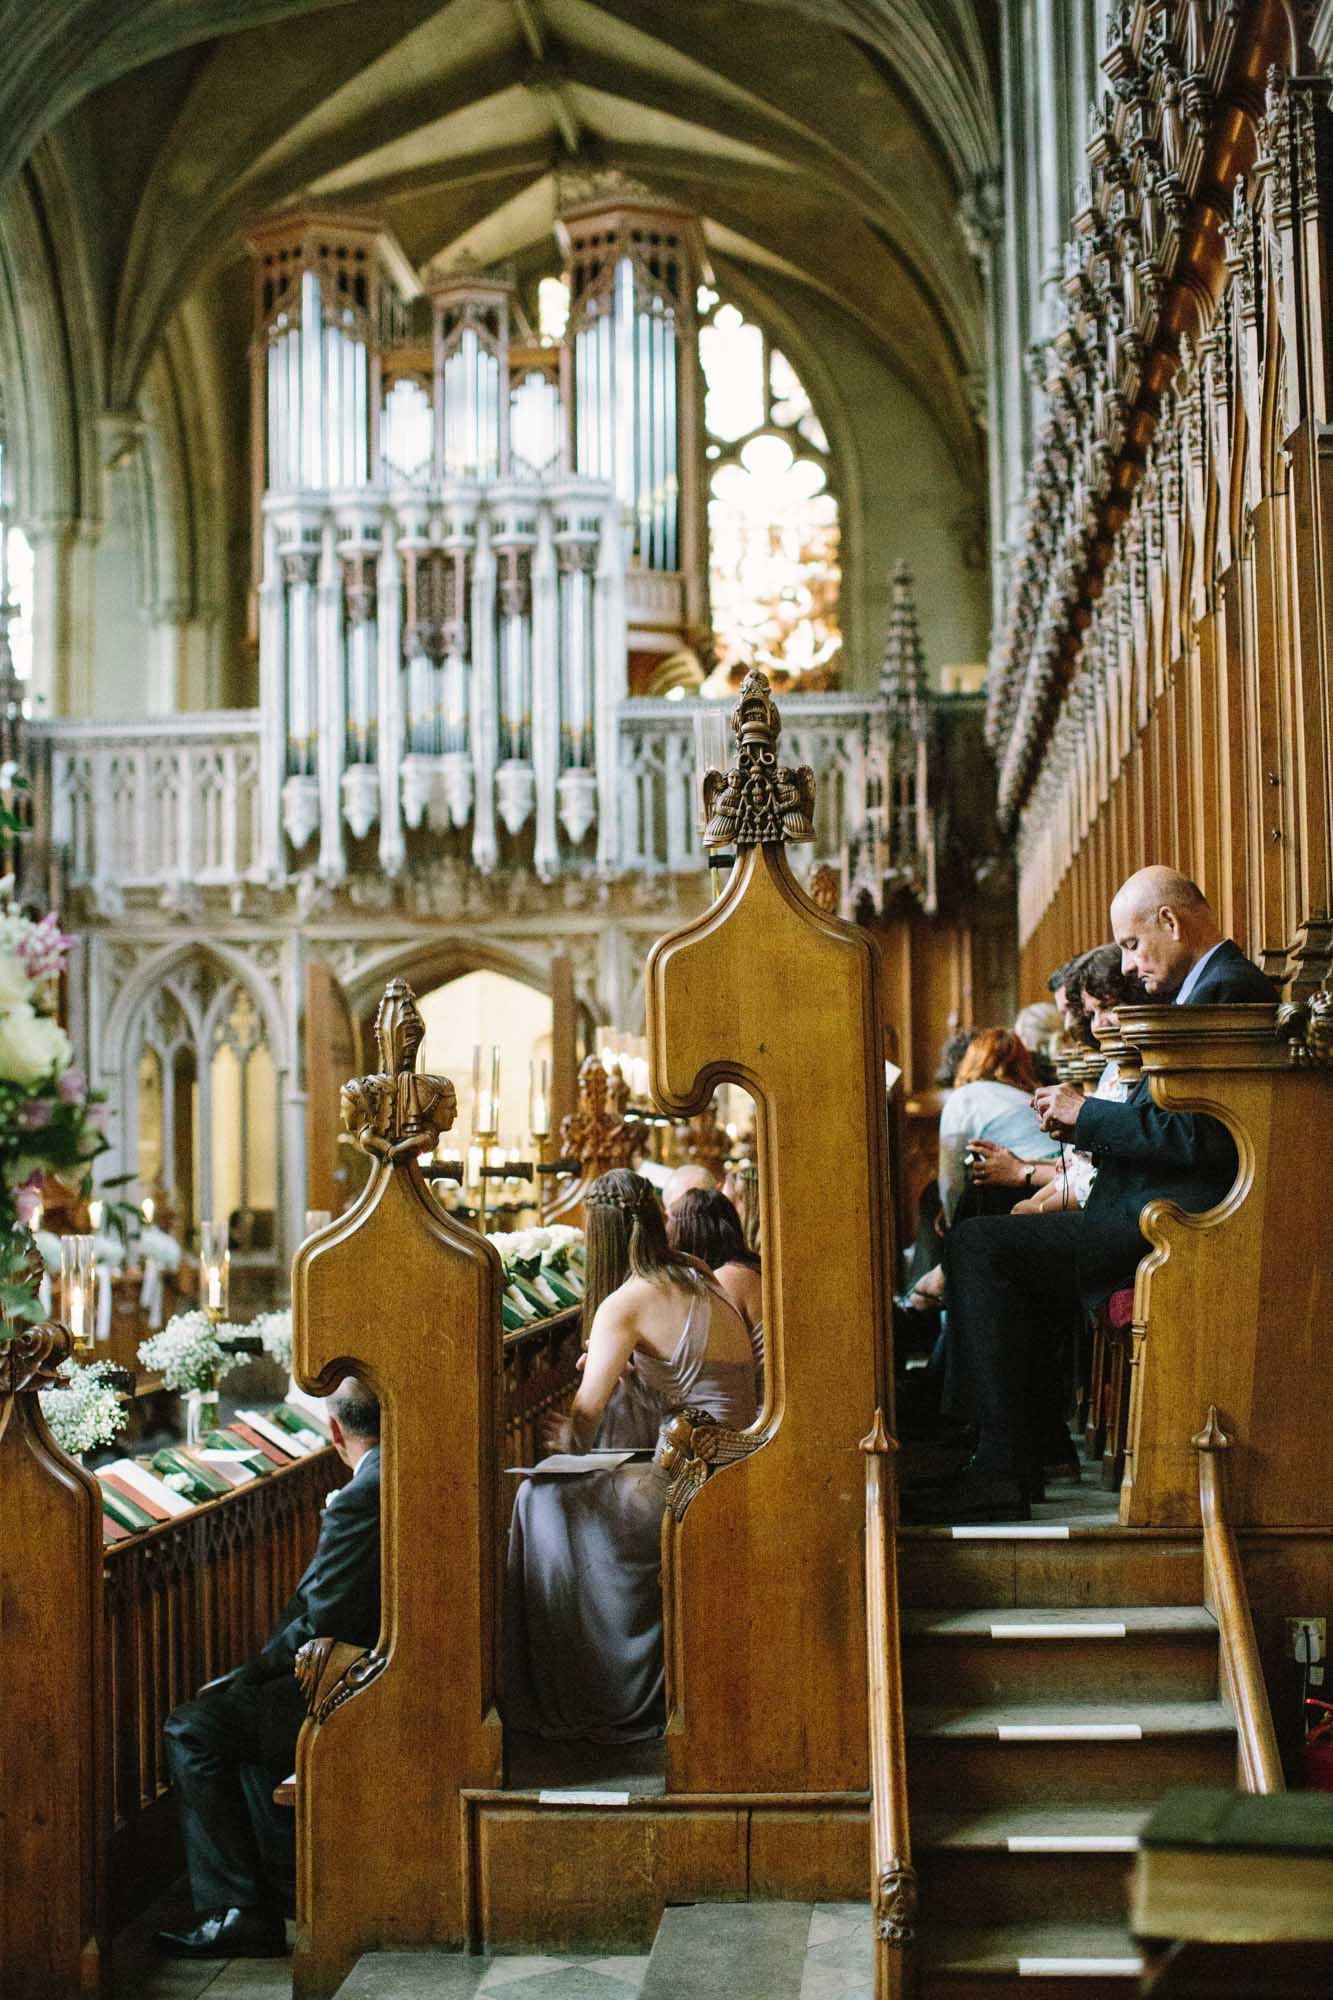 Wedding guests sitting in ornate church pews in Magdalen College Oxford